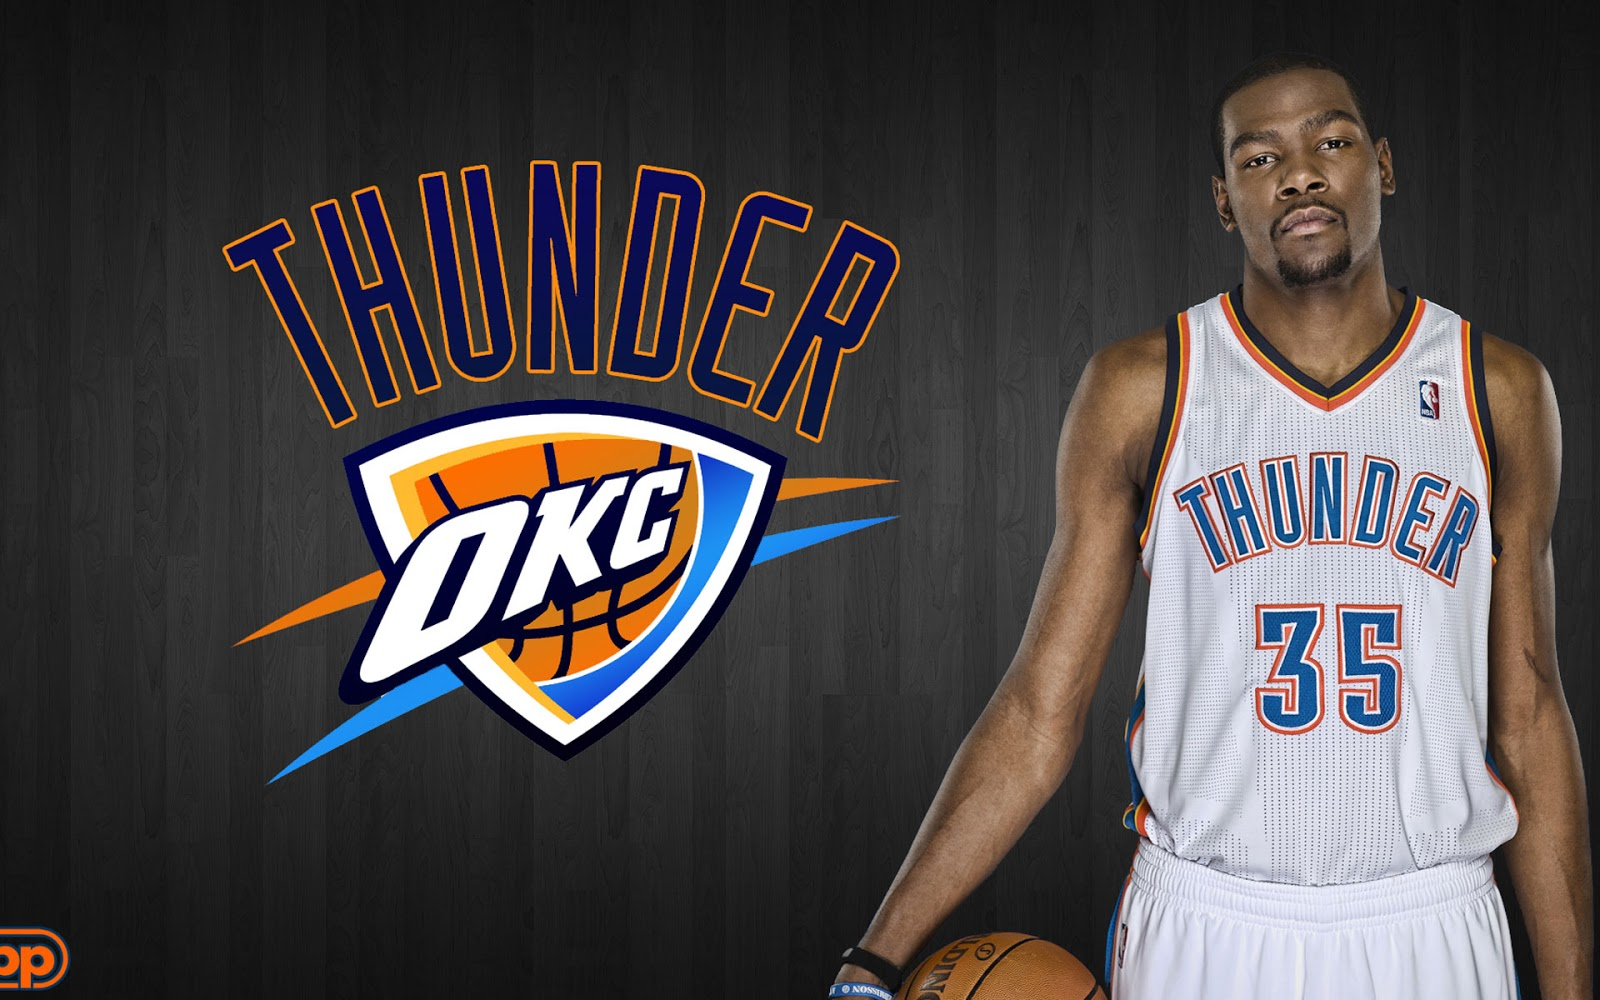 Kevin Durant Wallpaper Oklahoma City Thunder 1600x1000 pixel City HD 1600x1000